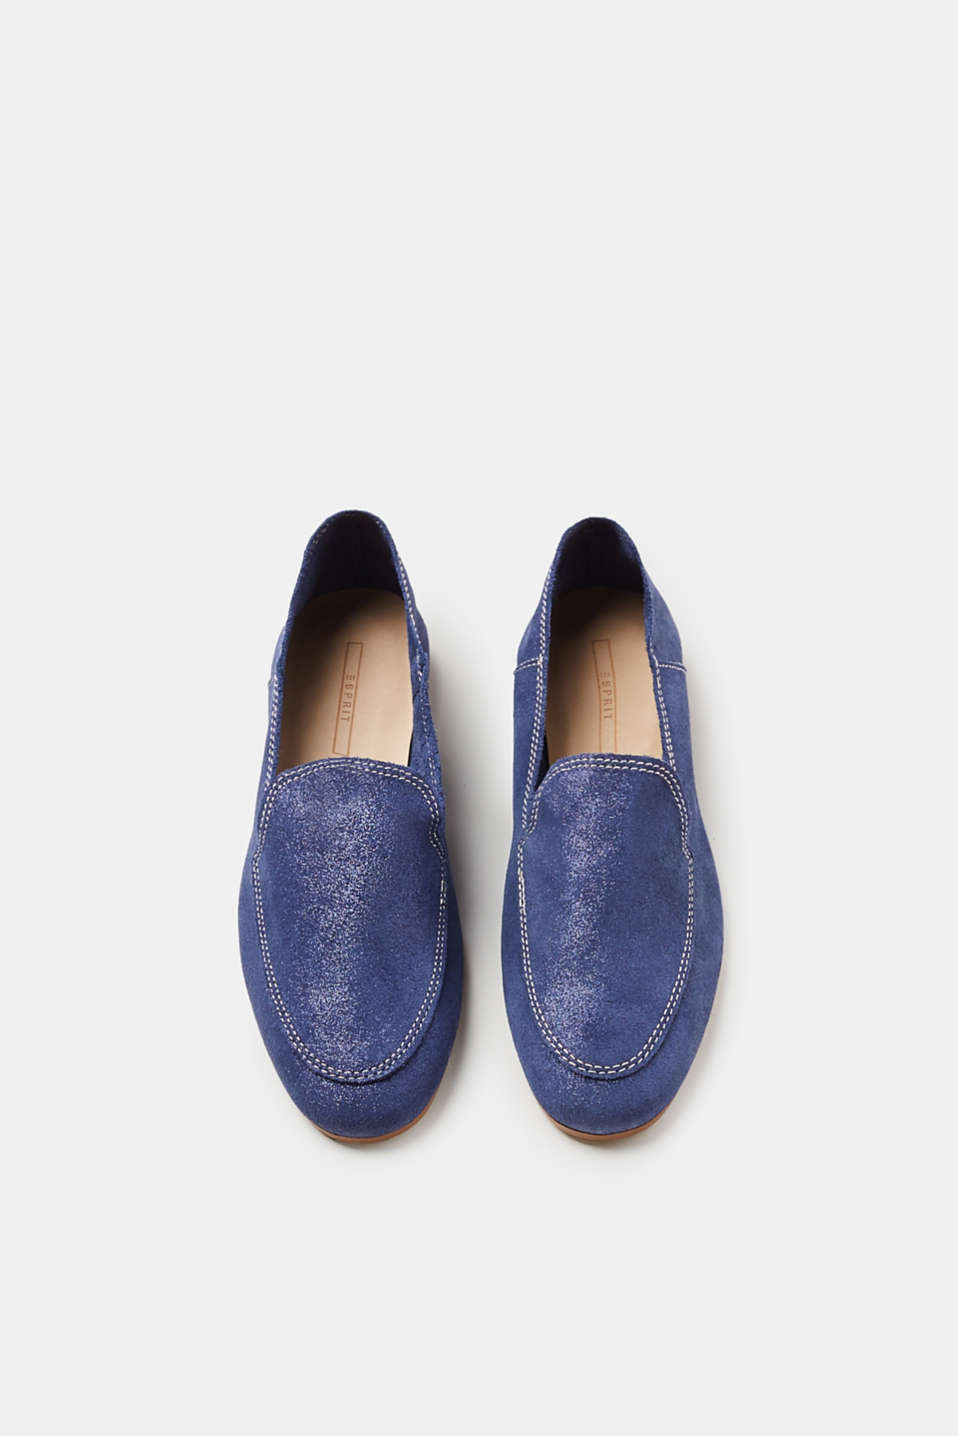 Loafers made of brushed-up leather with a glitter finish